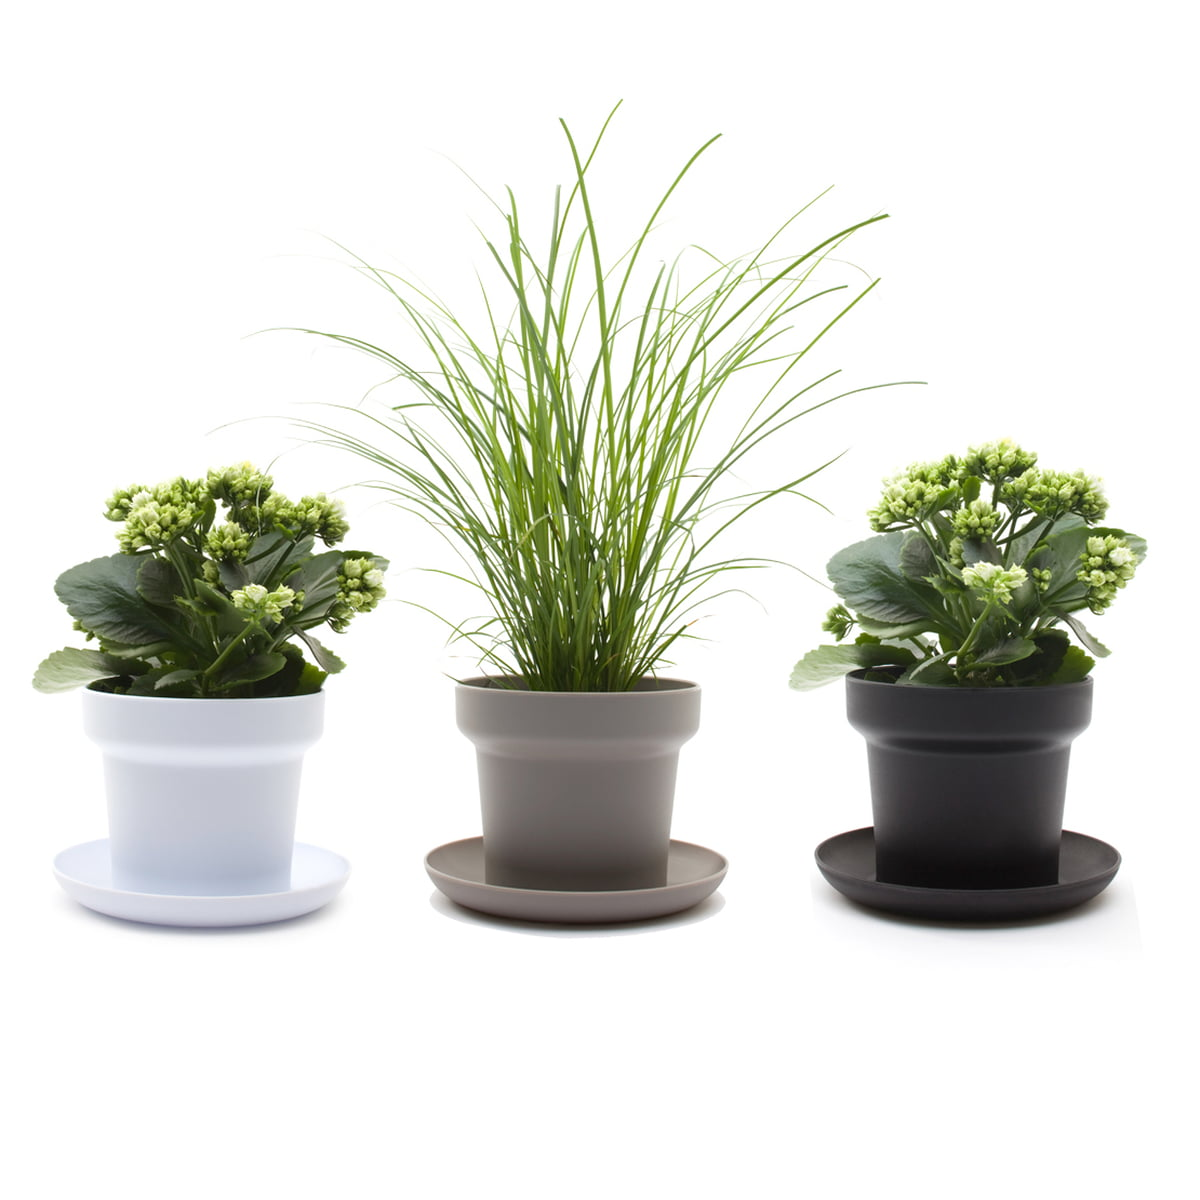 The Green Plant Pot By Authentics